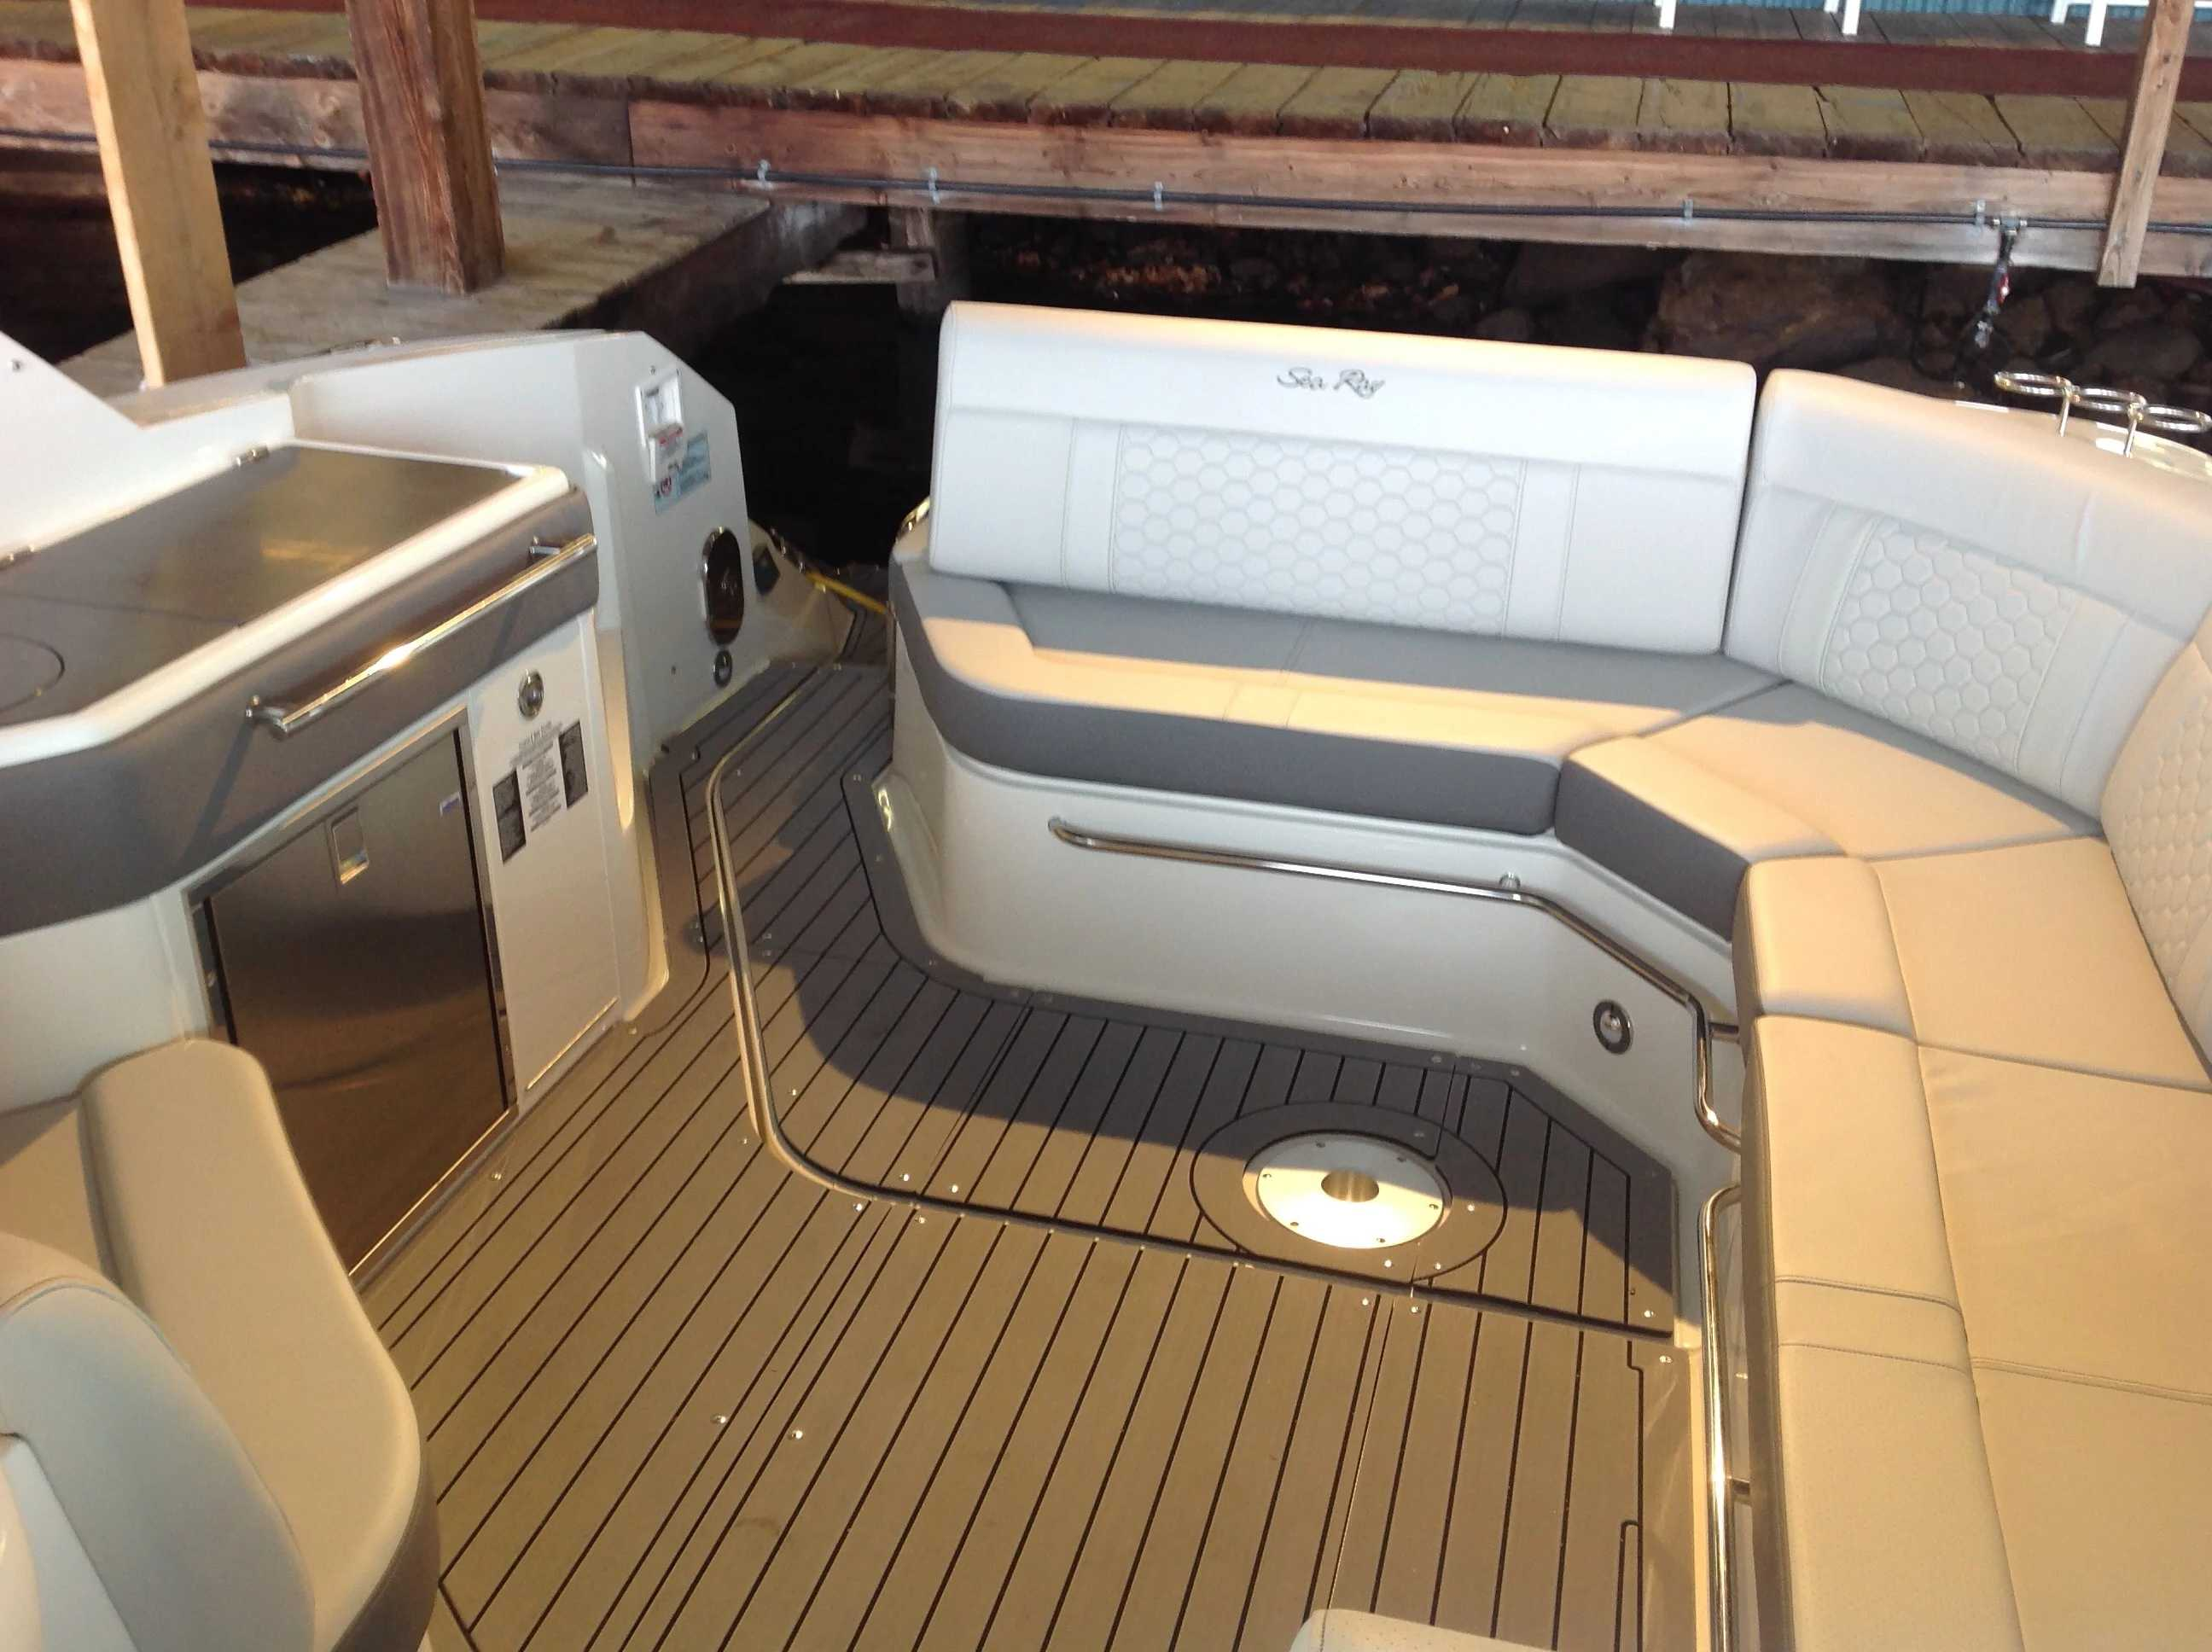 2021 Sea Ray boat for sale, model of the boat is 320 Sundancer & Image # 23 of 31